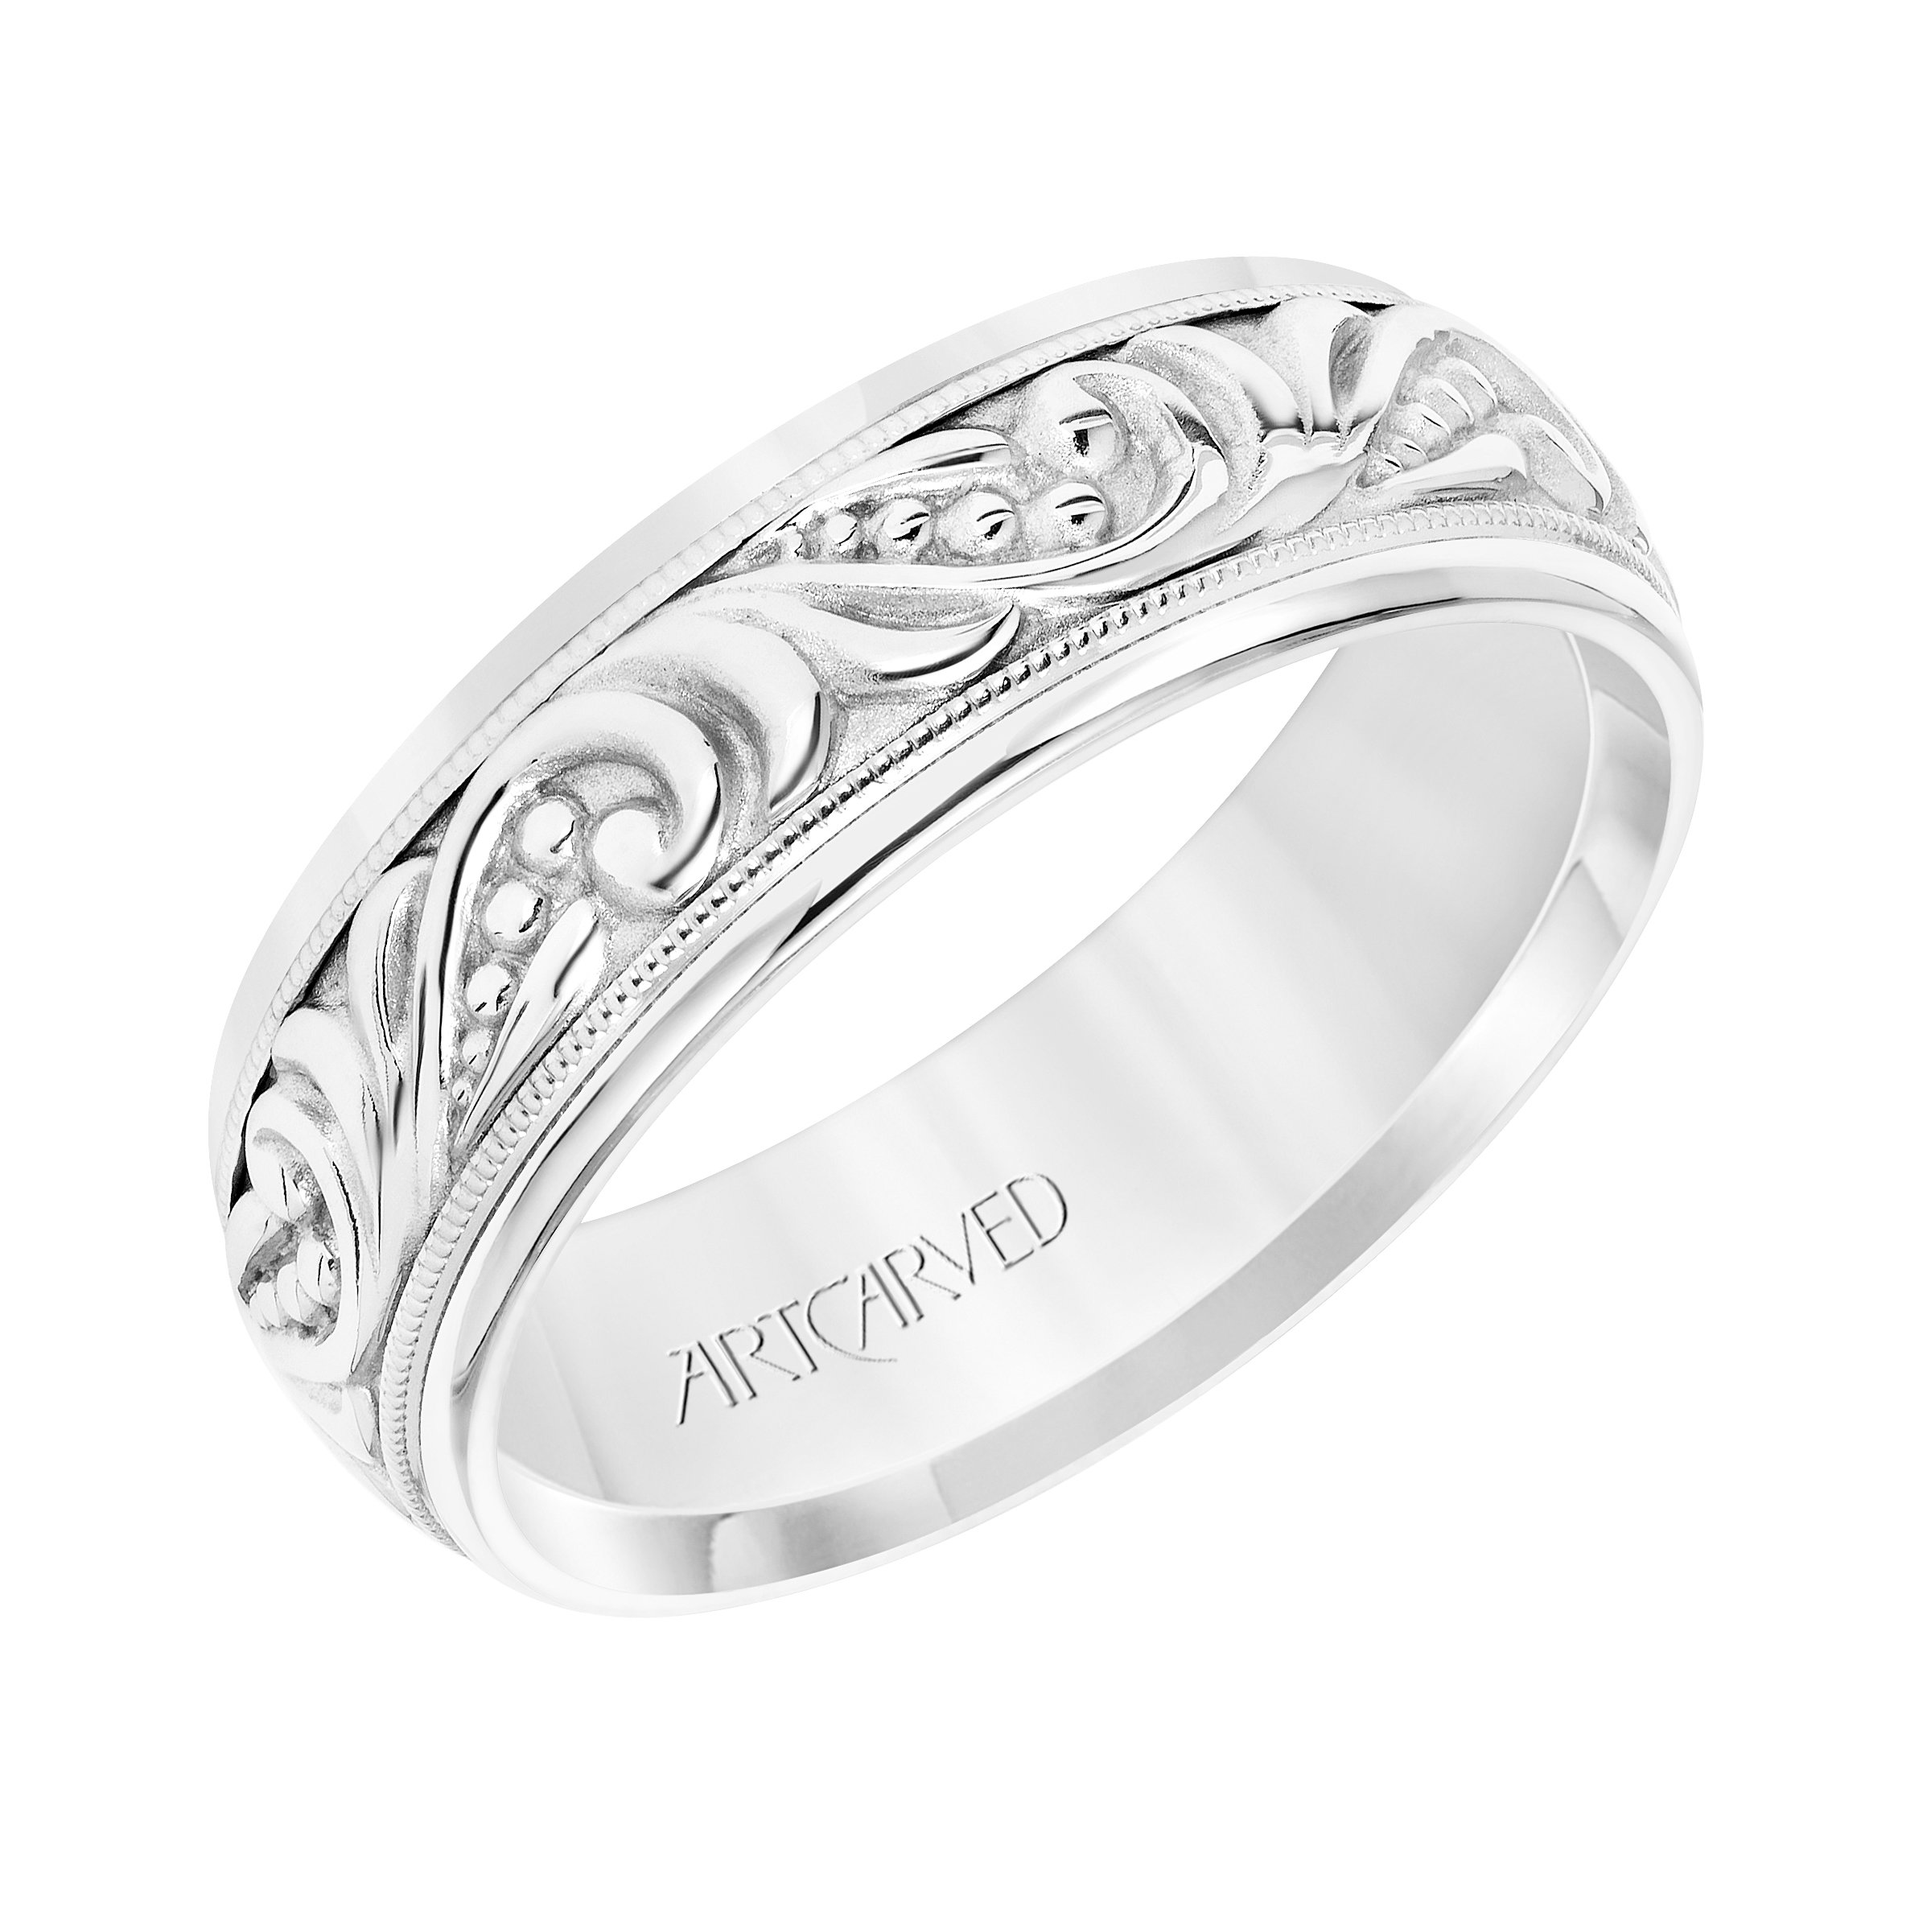 Artcarved Plain White Gold Mens Wedding Bands Designer Engagement